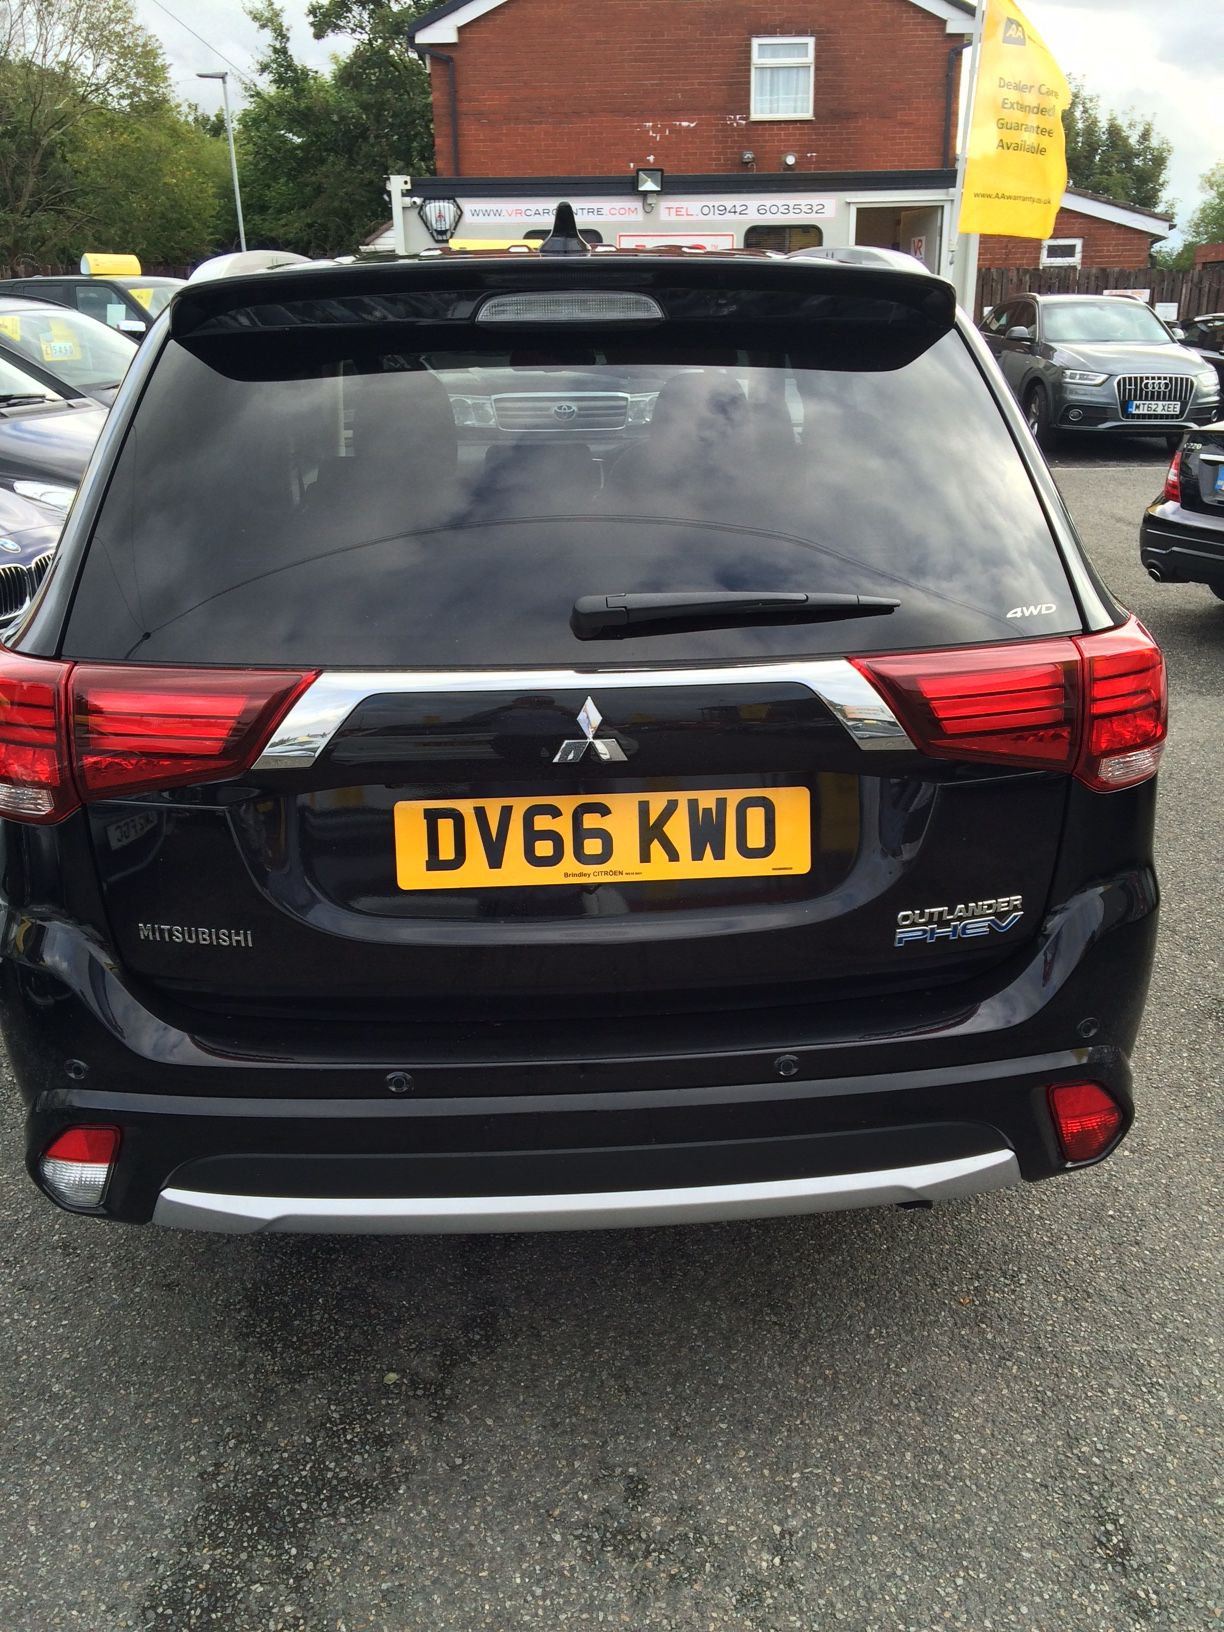 The Mitsubishi Outlander PHEV carleasing deal One of